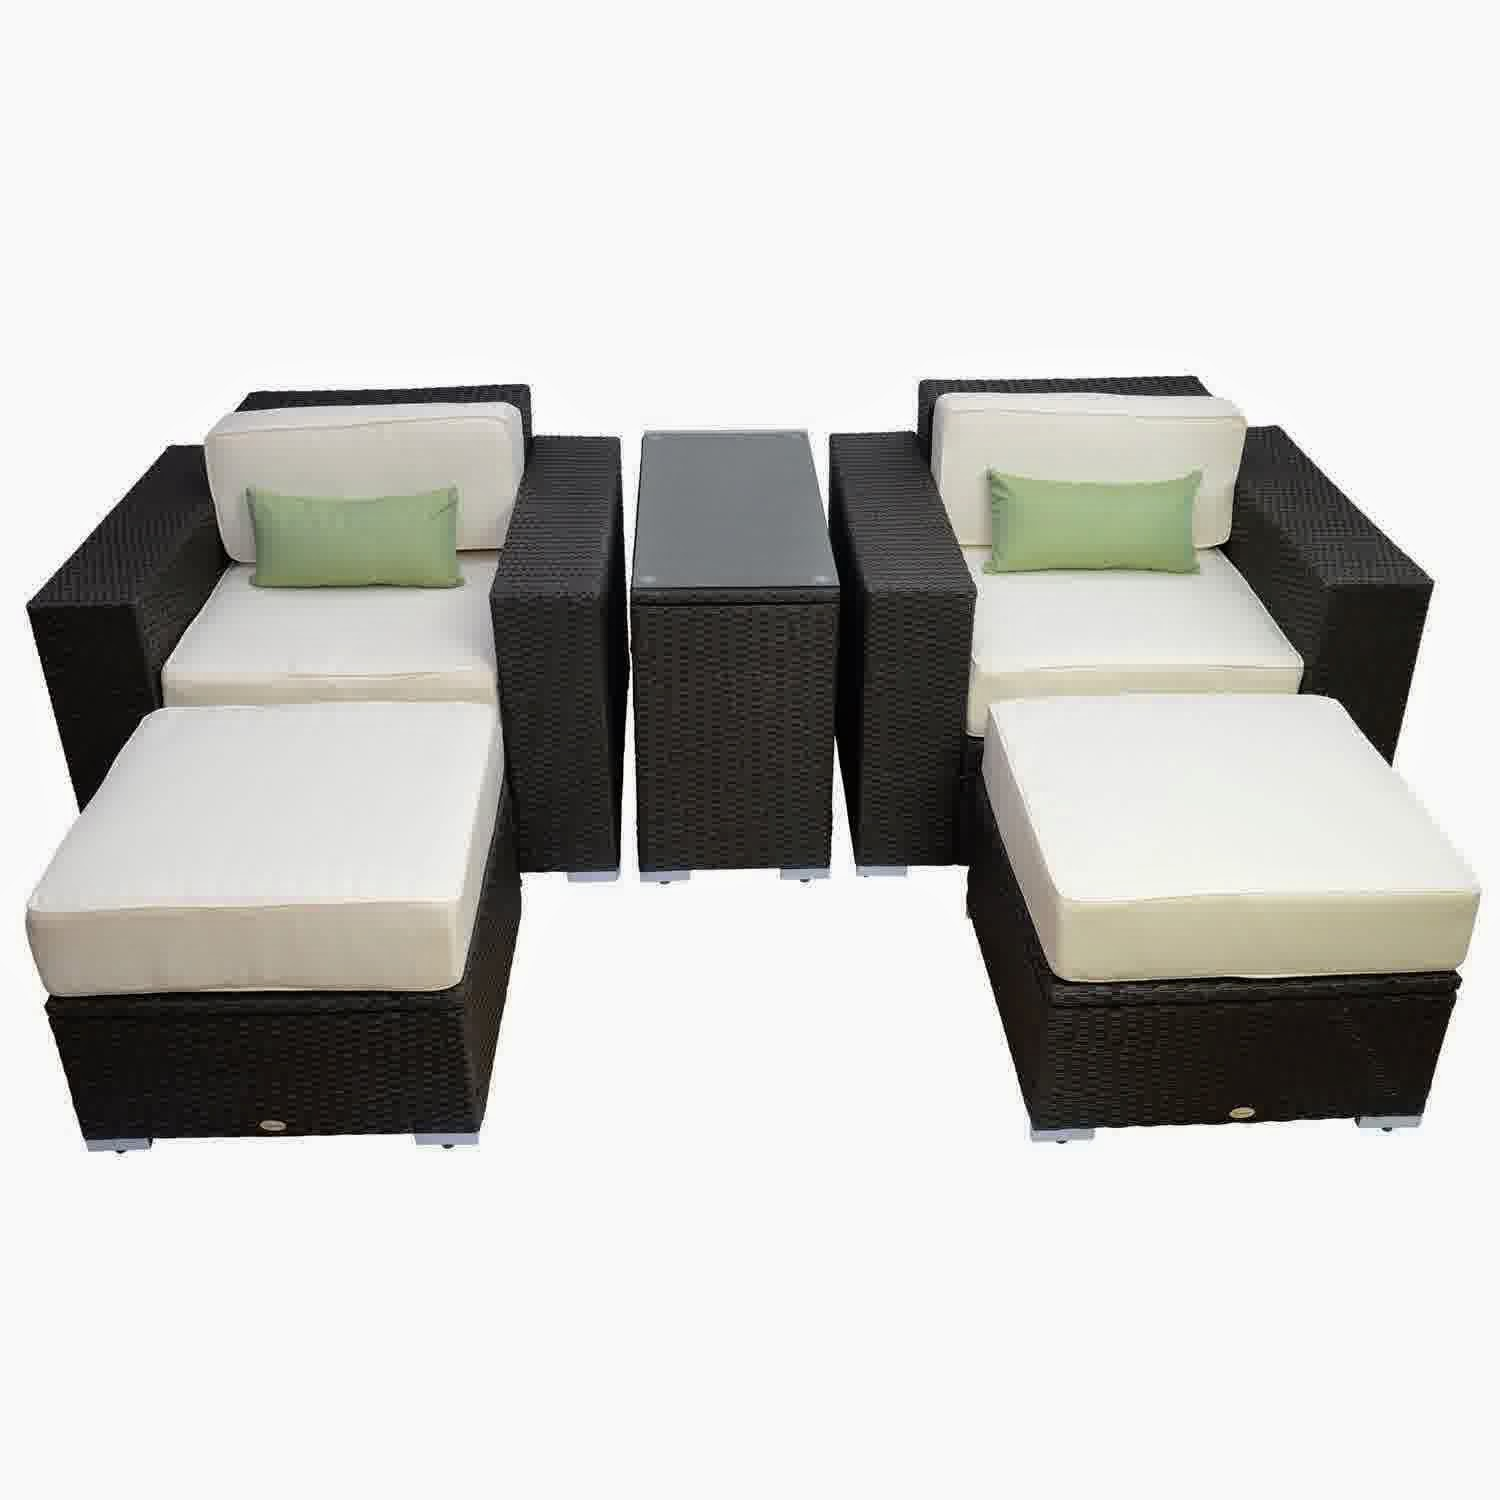 discount until 60 outsunny 5pc outdoor pe rattan wicker lounge chair patio furniture set. Black Bedroom Furniture Sets. Home Design Ideas